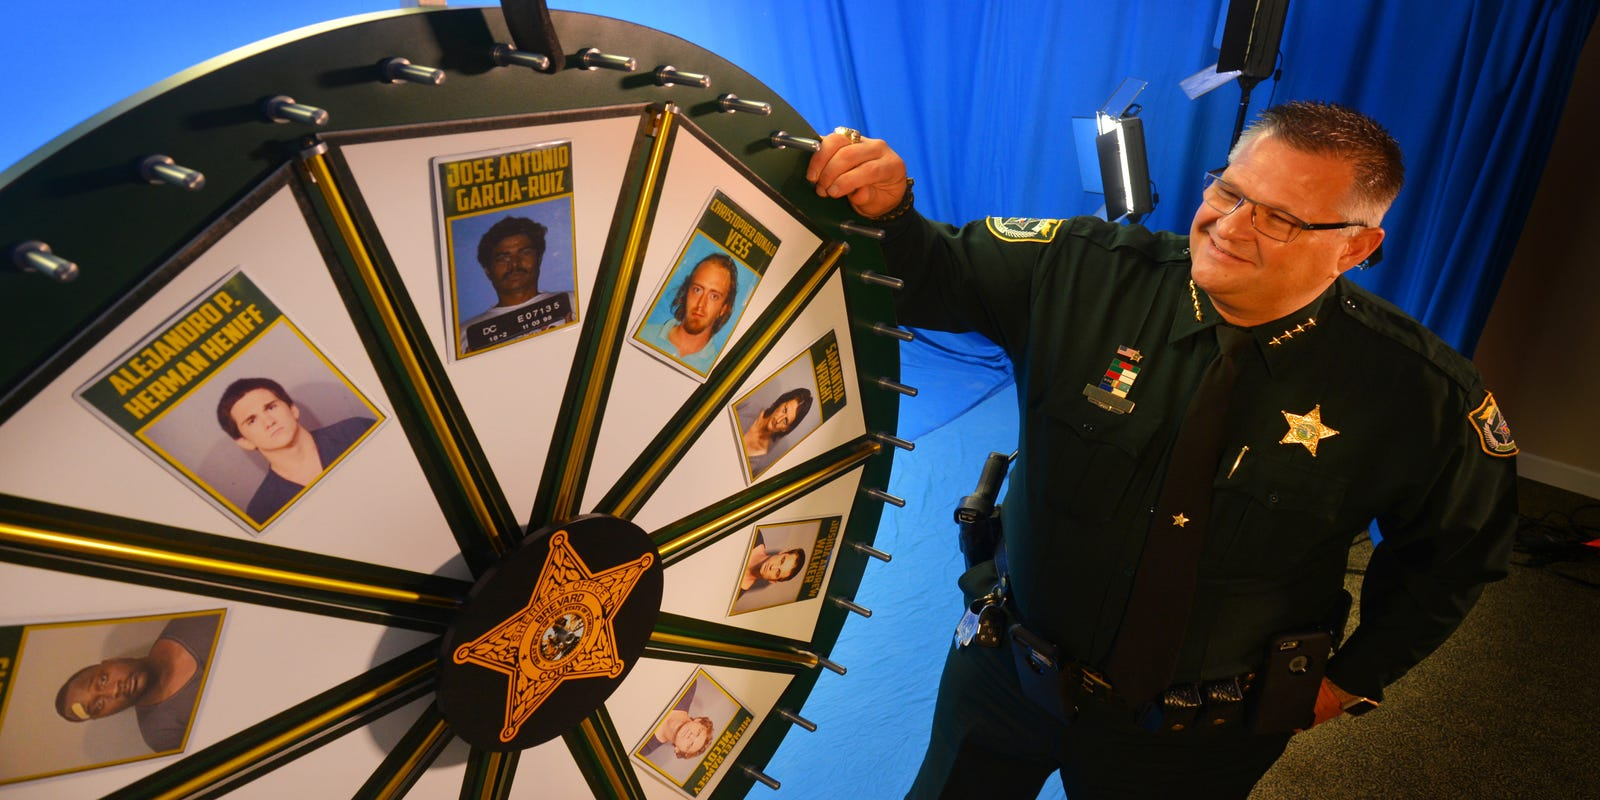 Like or dislike? Sheriff Ivey bets big on social media to